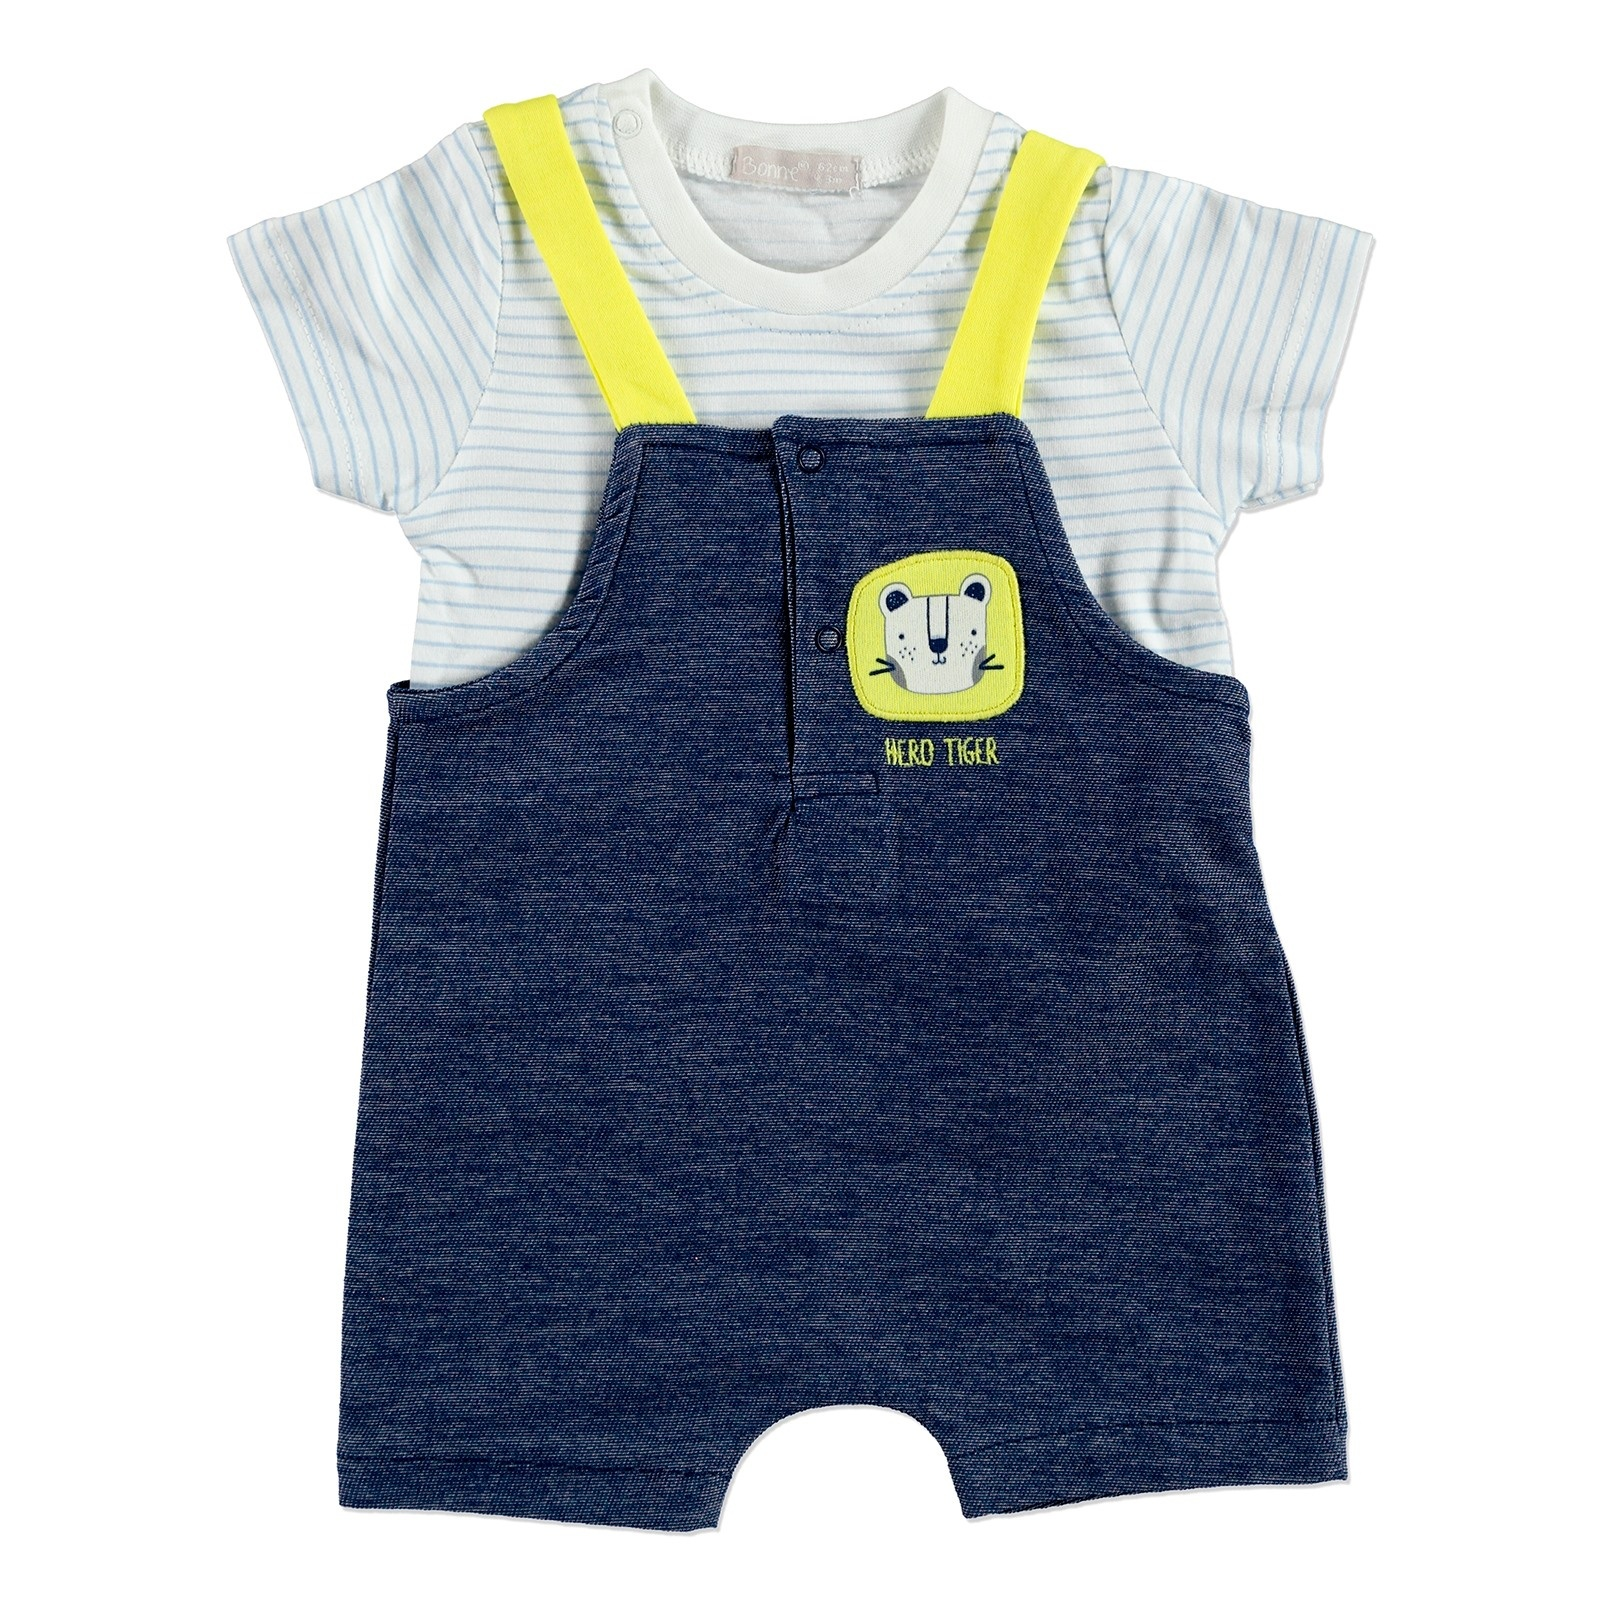 Ebebek BONNE Summer Baby Boy Safari Adventure Short Sleeve Dungarees T-shirt 2 Pcs Set